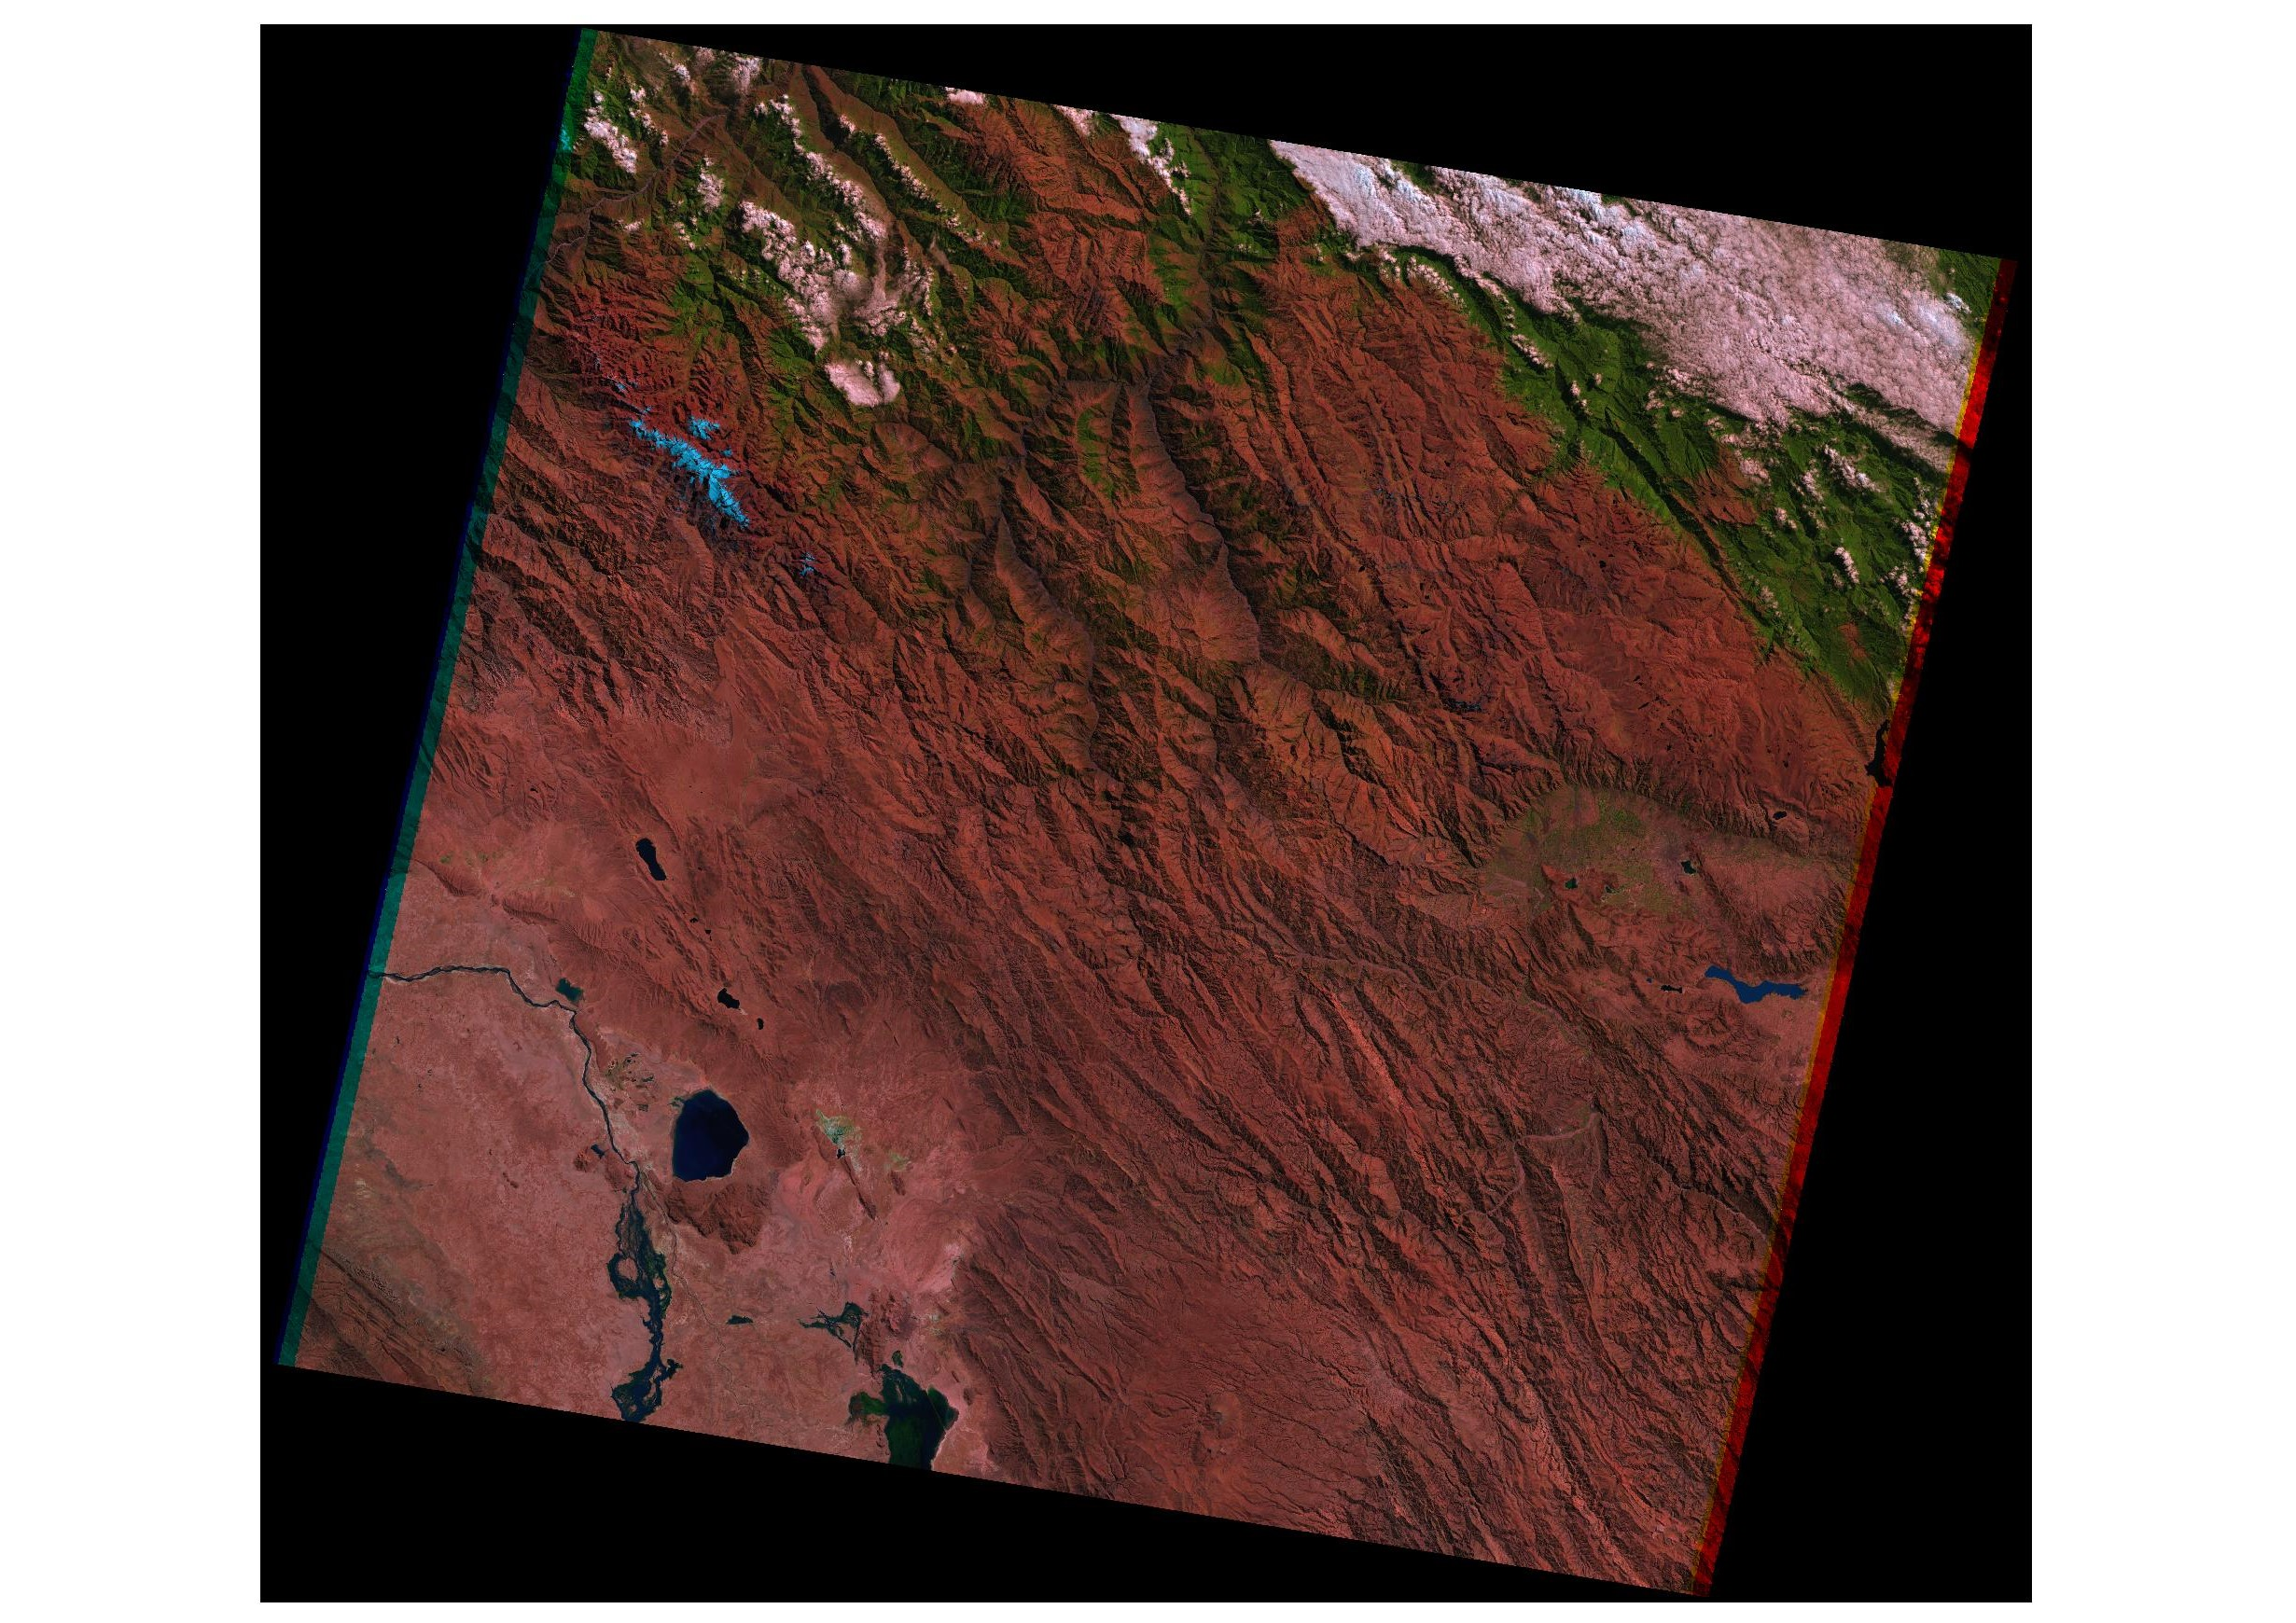 Figure 2: This false-colour RGB image was created by using spectral bands of SWIR, NIR, and Red of the Landsat 05 (TM) satellite image (footprint 170 km x 180 km), taken on 5 August 1985 with a resolution of 30m.